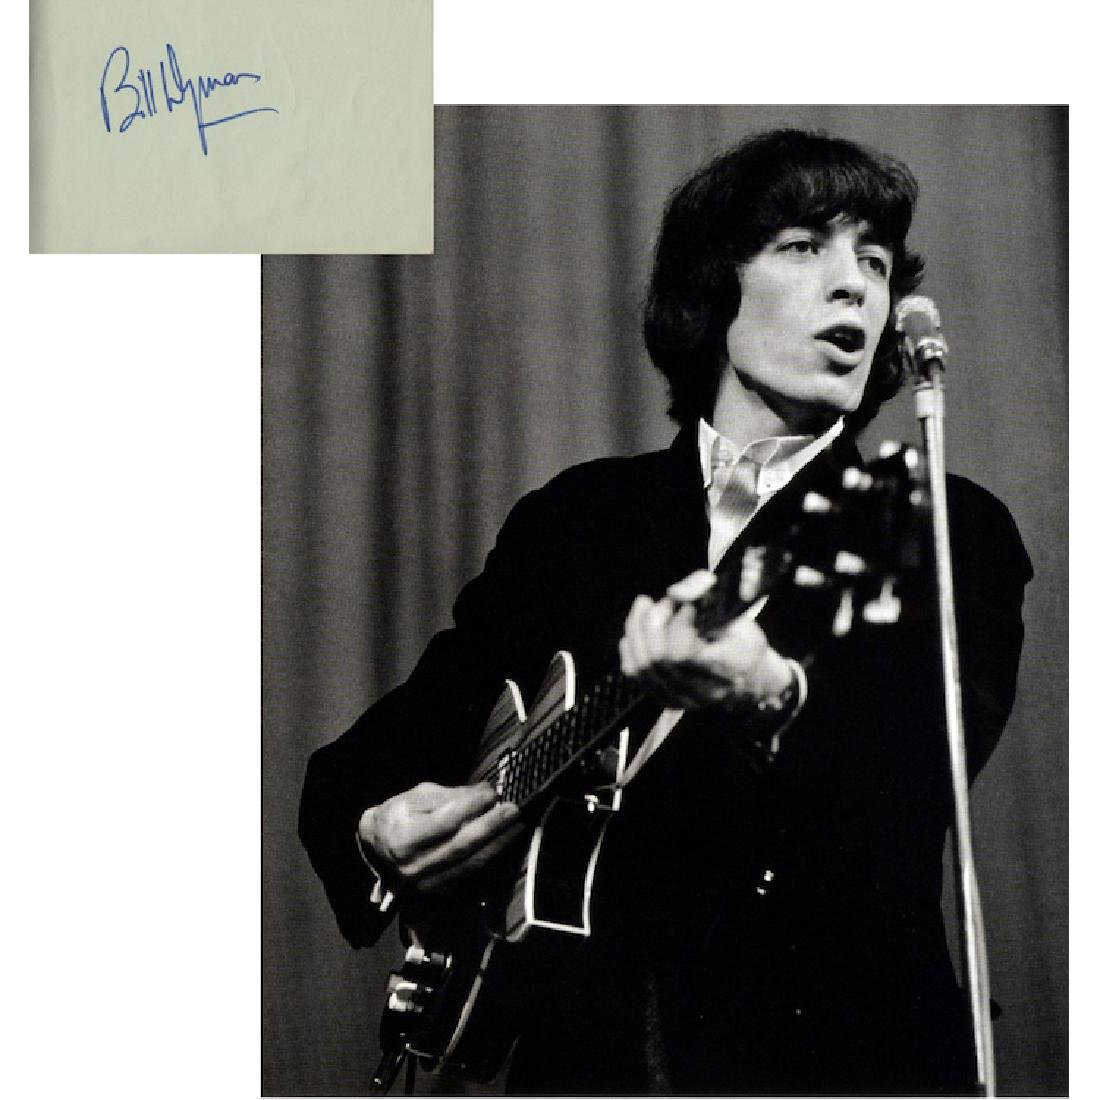 The Rolling Stones - Bill Wyman - Autograph